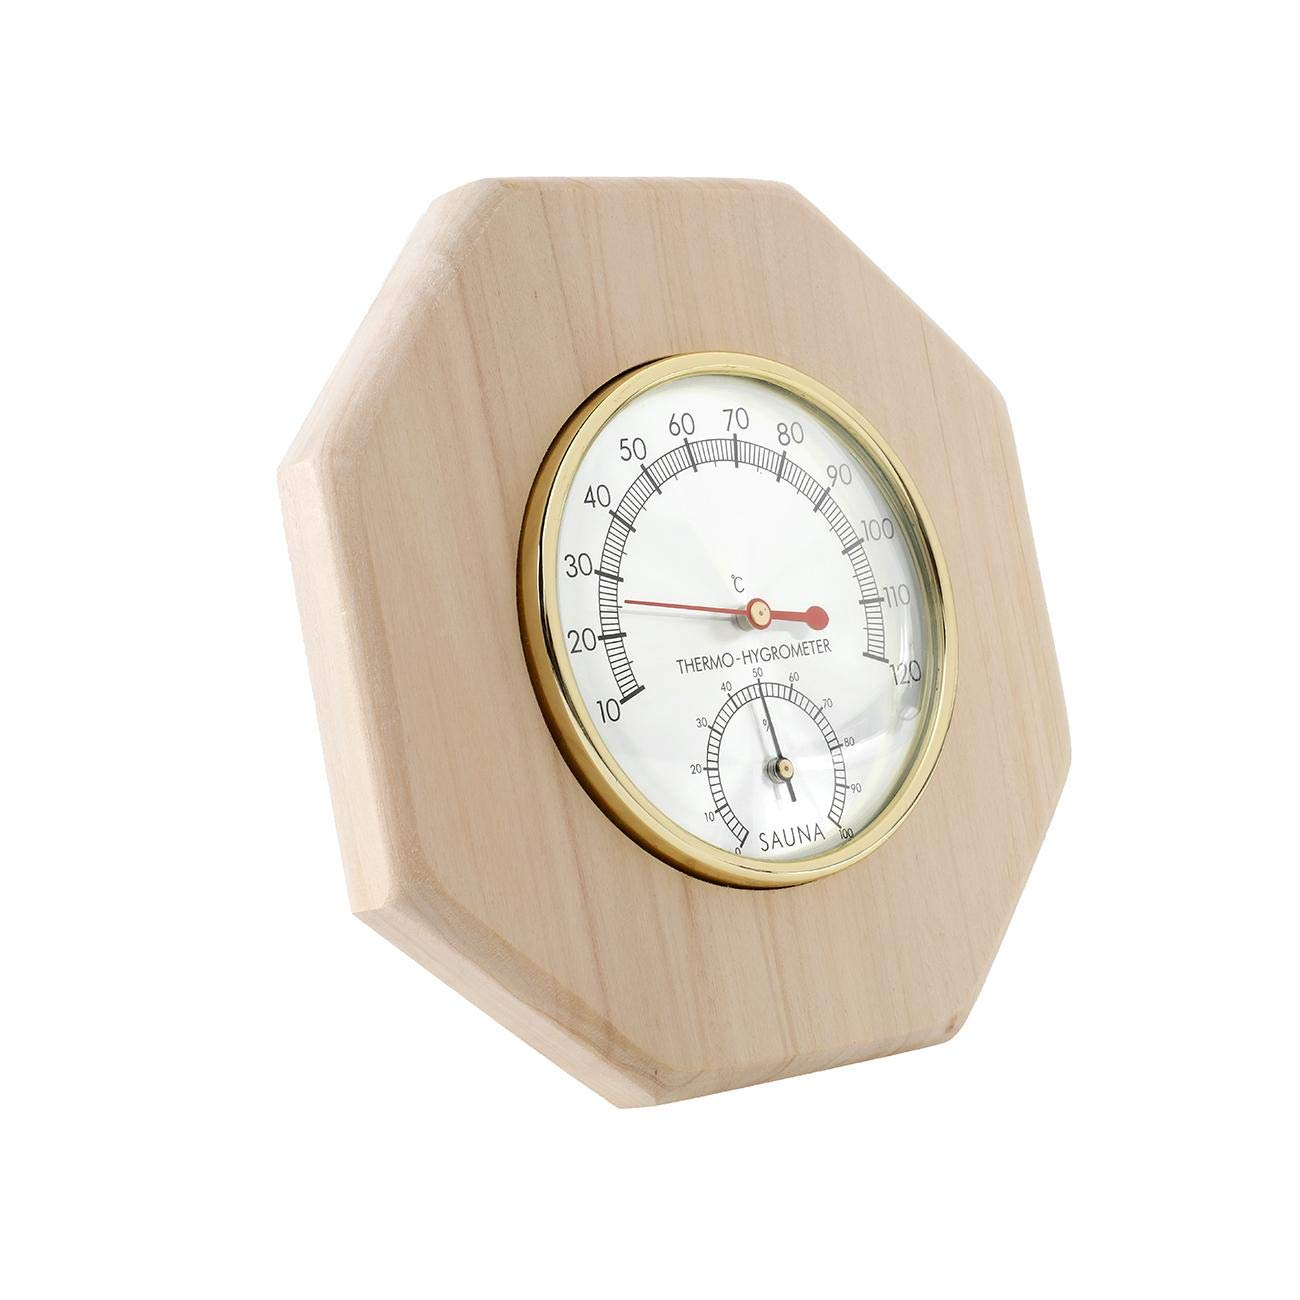 Dyna-Living Wooden Sauna Hygrothermograph 2 in 1 Thermometer Hygrometer Double Dial Sauna Room Accessory